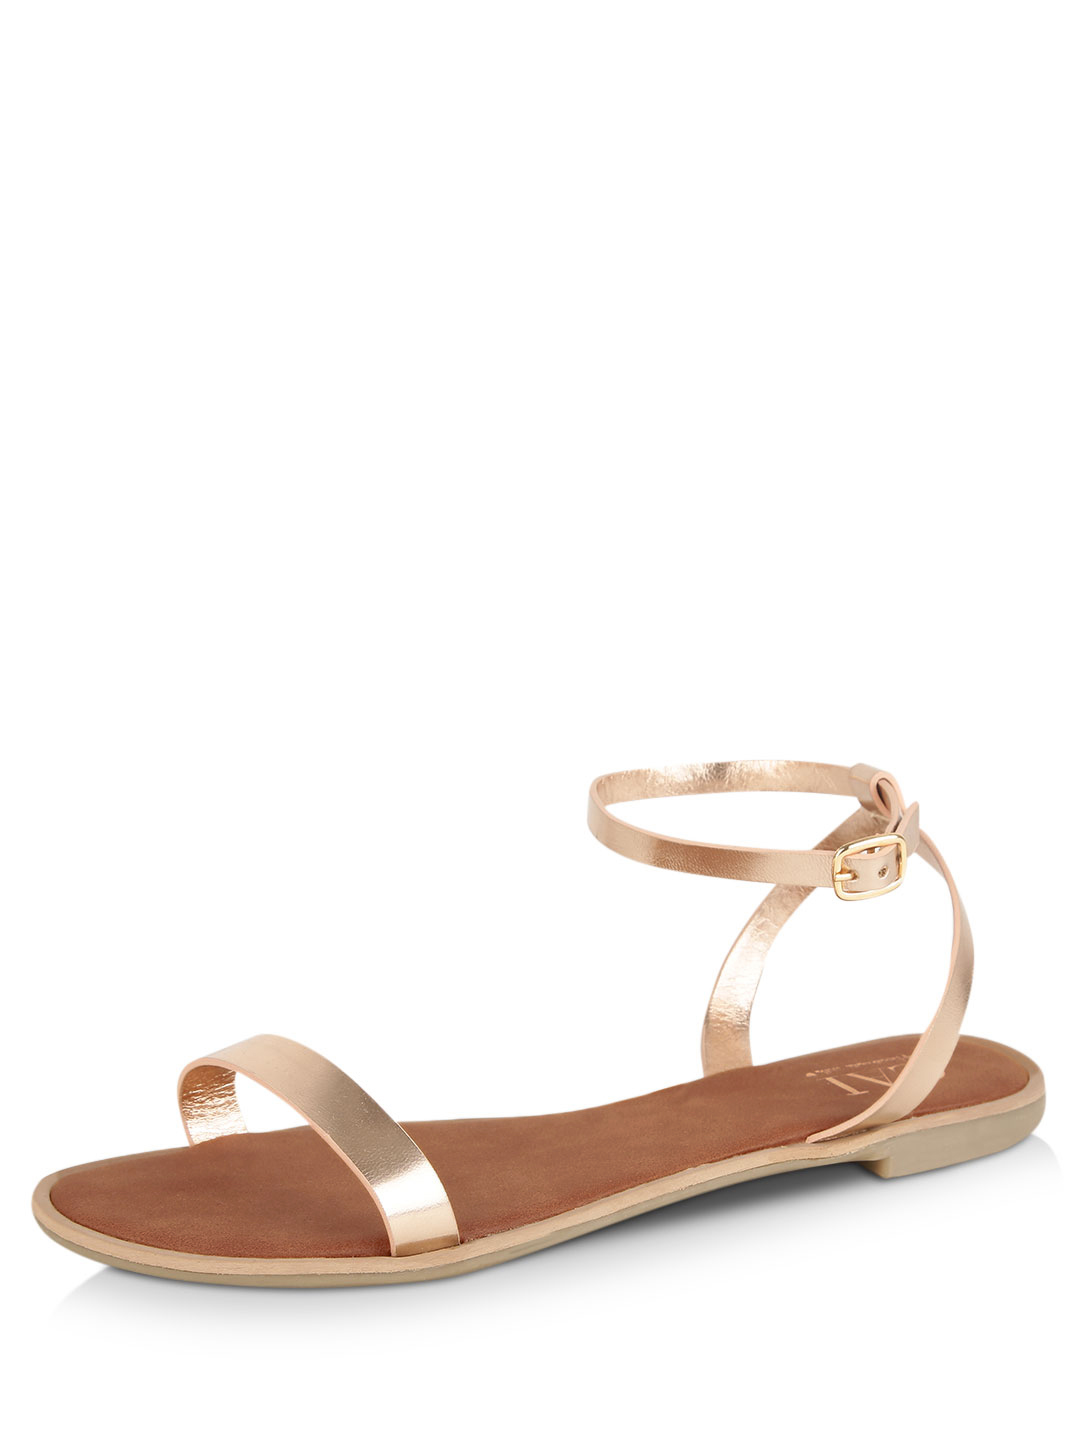 CAi Rose Gold Barely There Flat Sandals 1